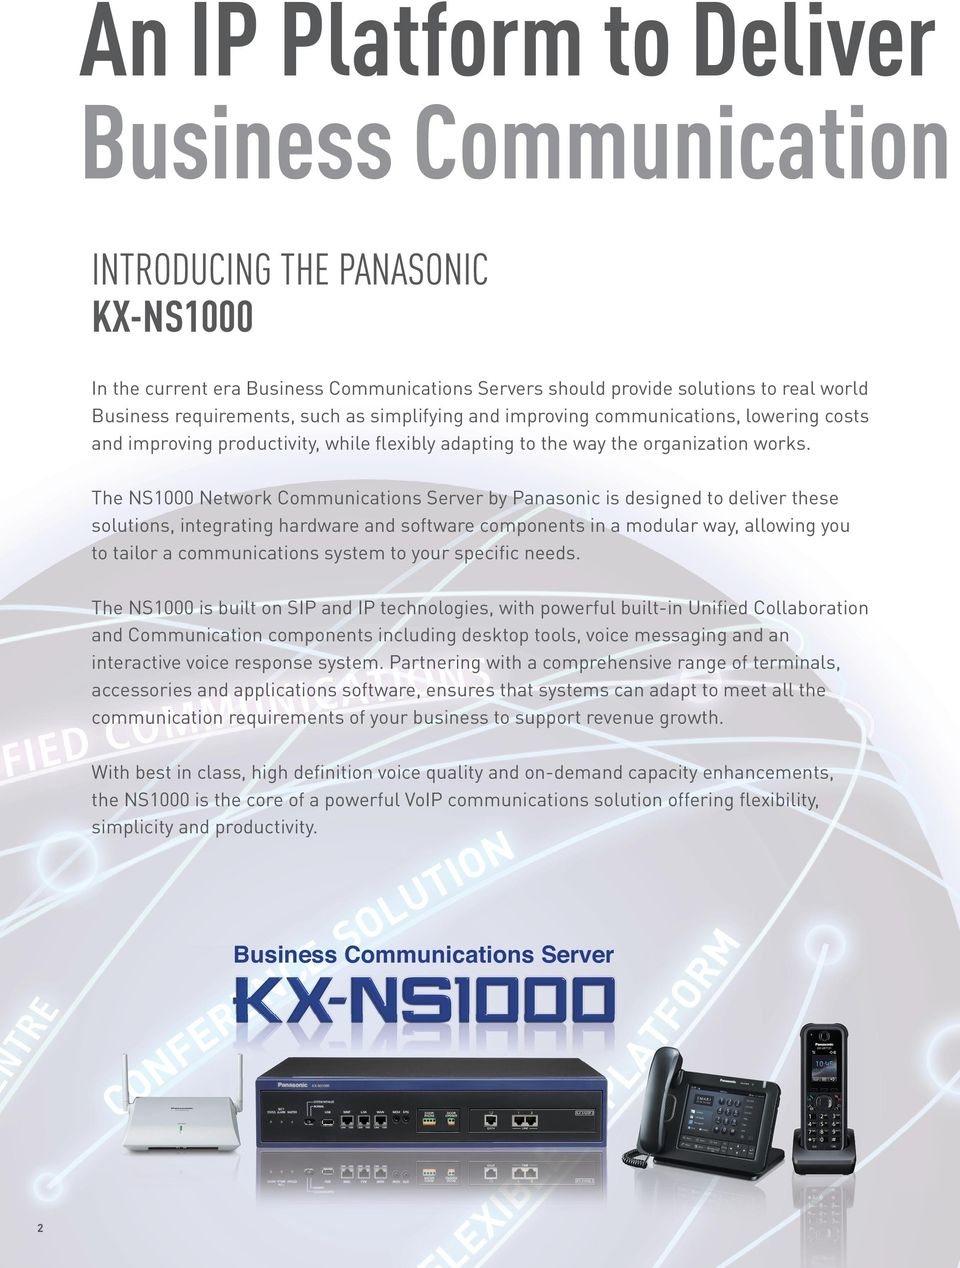 The NS1000 Network Communications Server by Panasonic is designed to deliver these solutions, integrating hardware and software components in a modular way, allowing you to tailor a communications